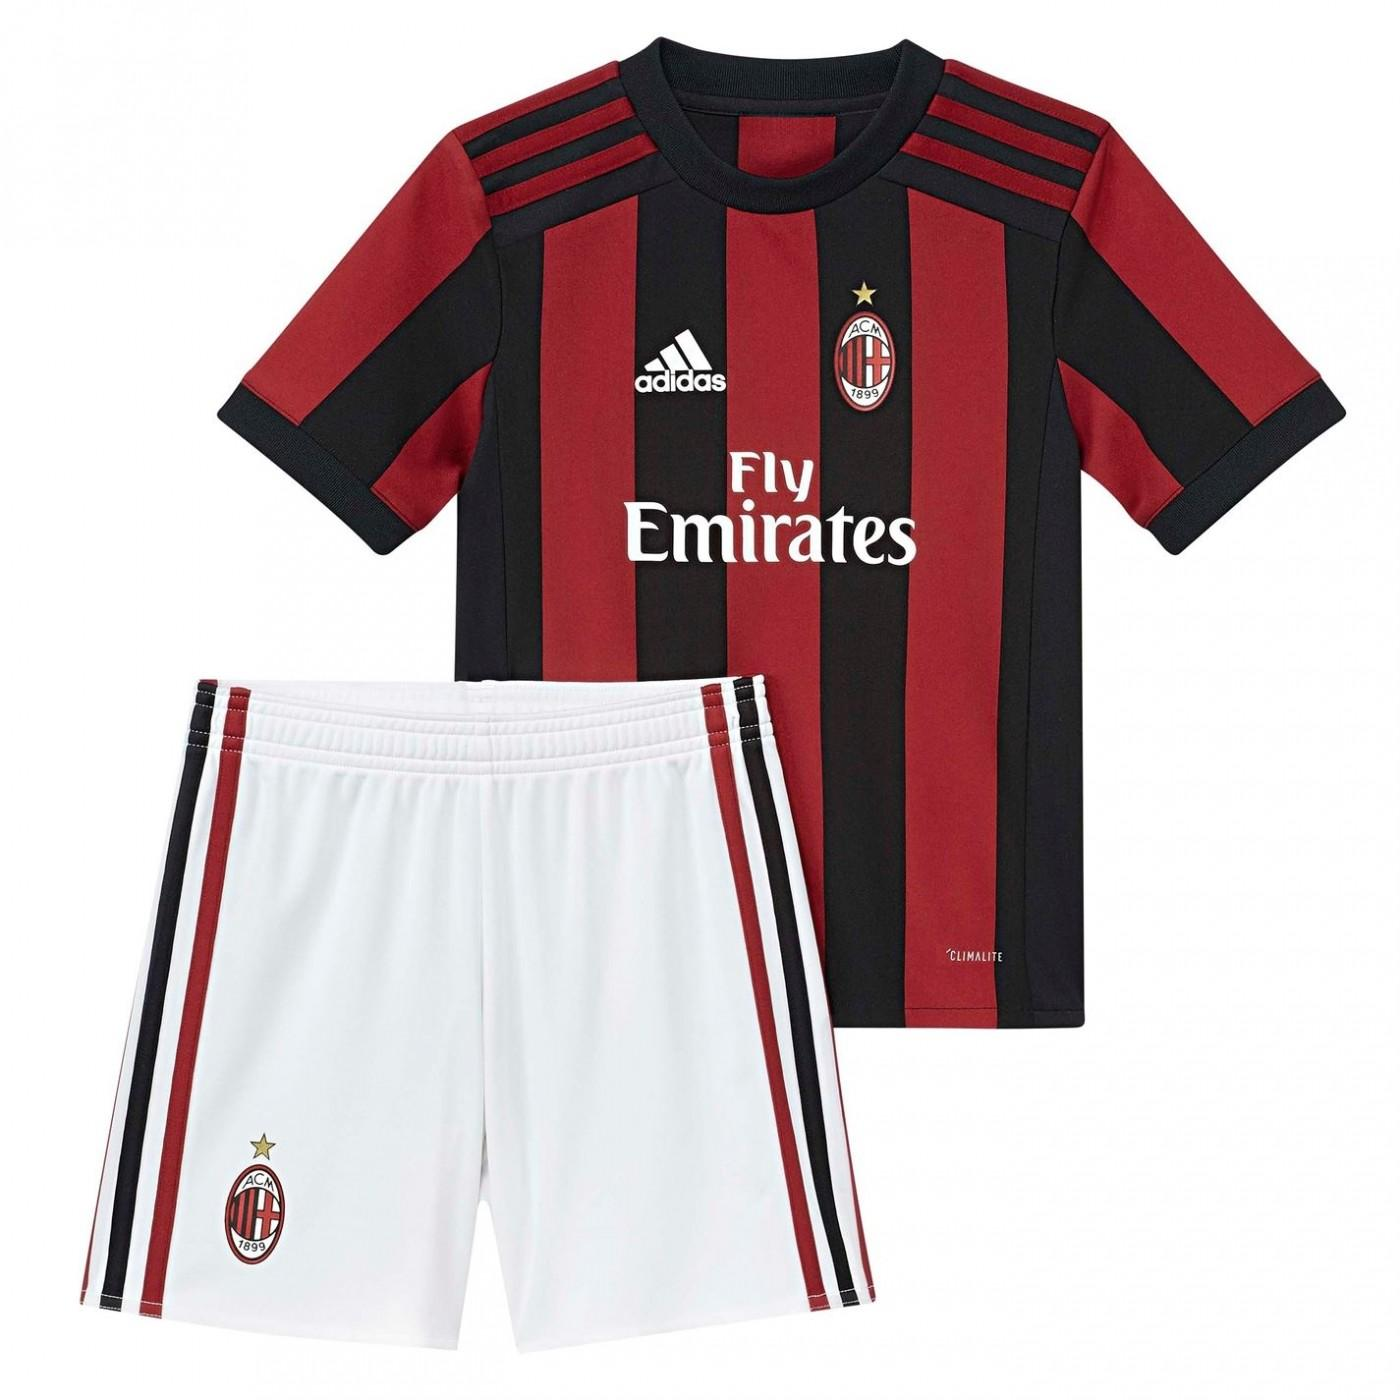 Adidas Milan Home Mini Kit 2017 2018 Factcool